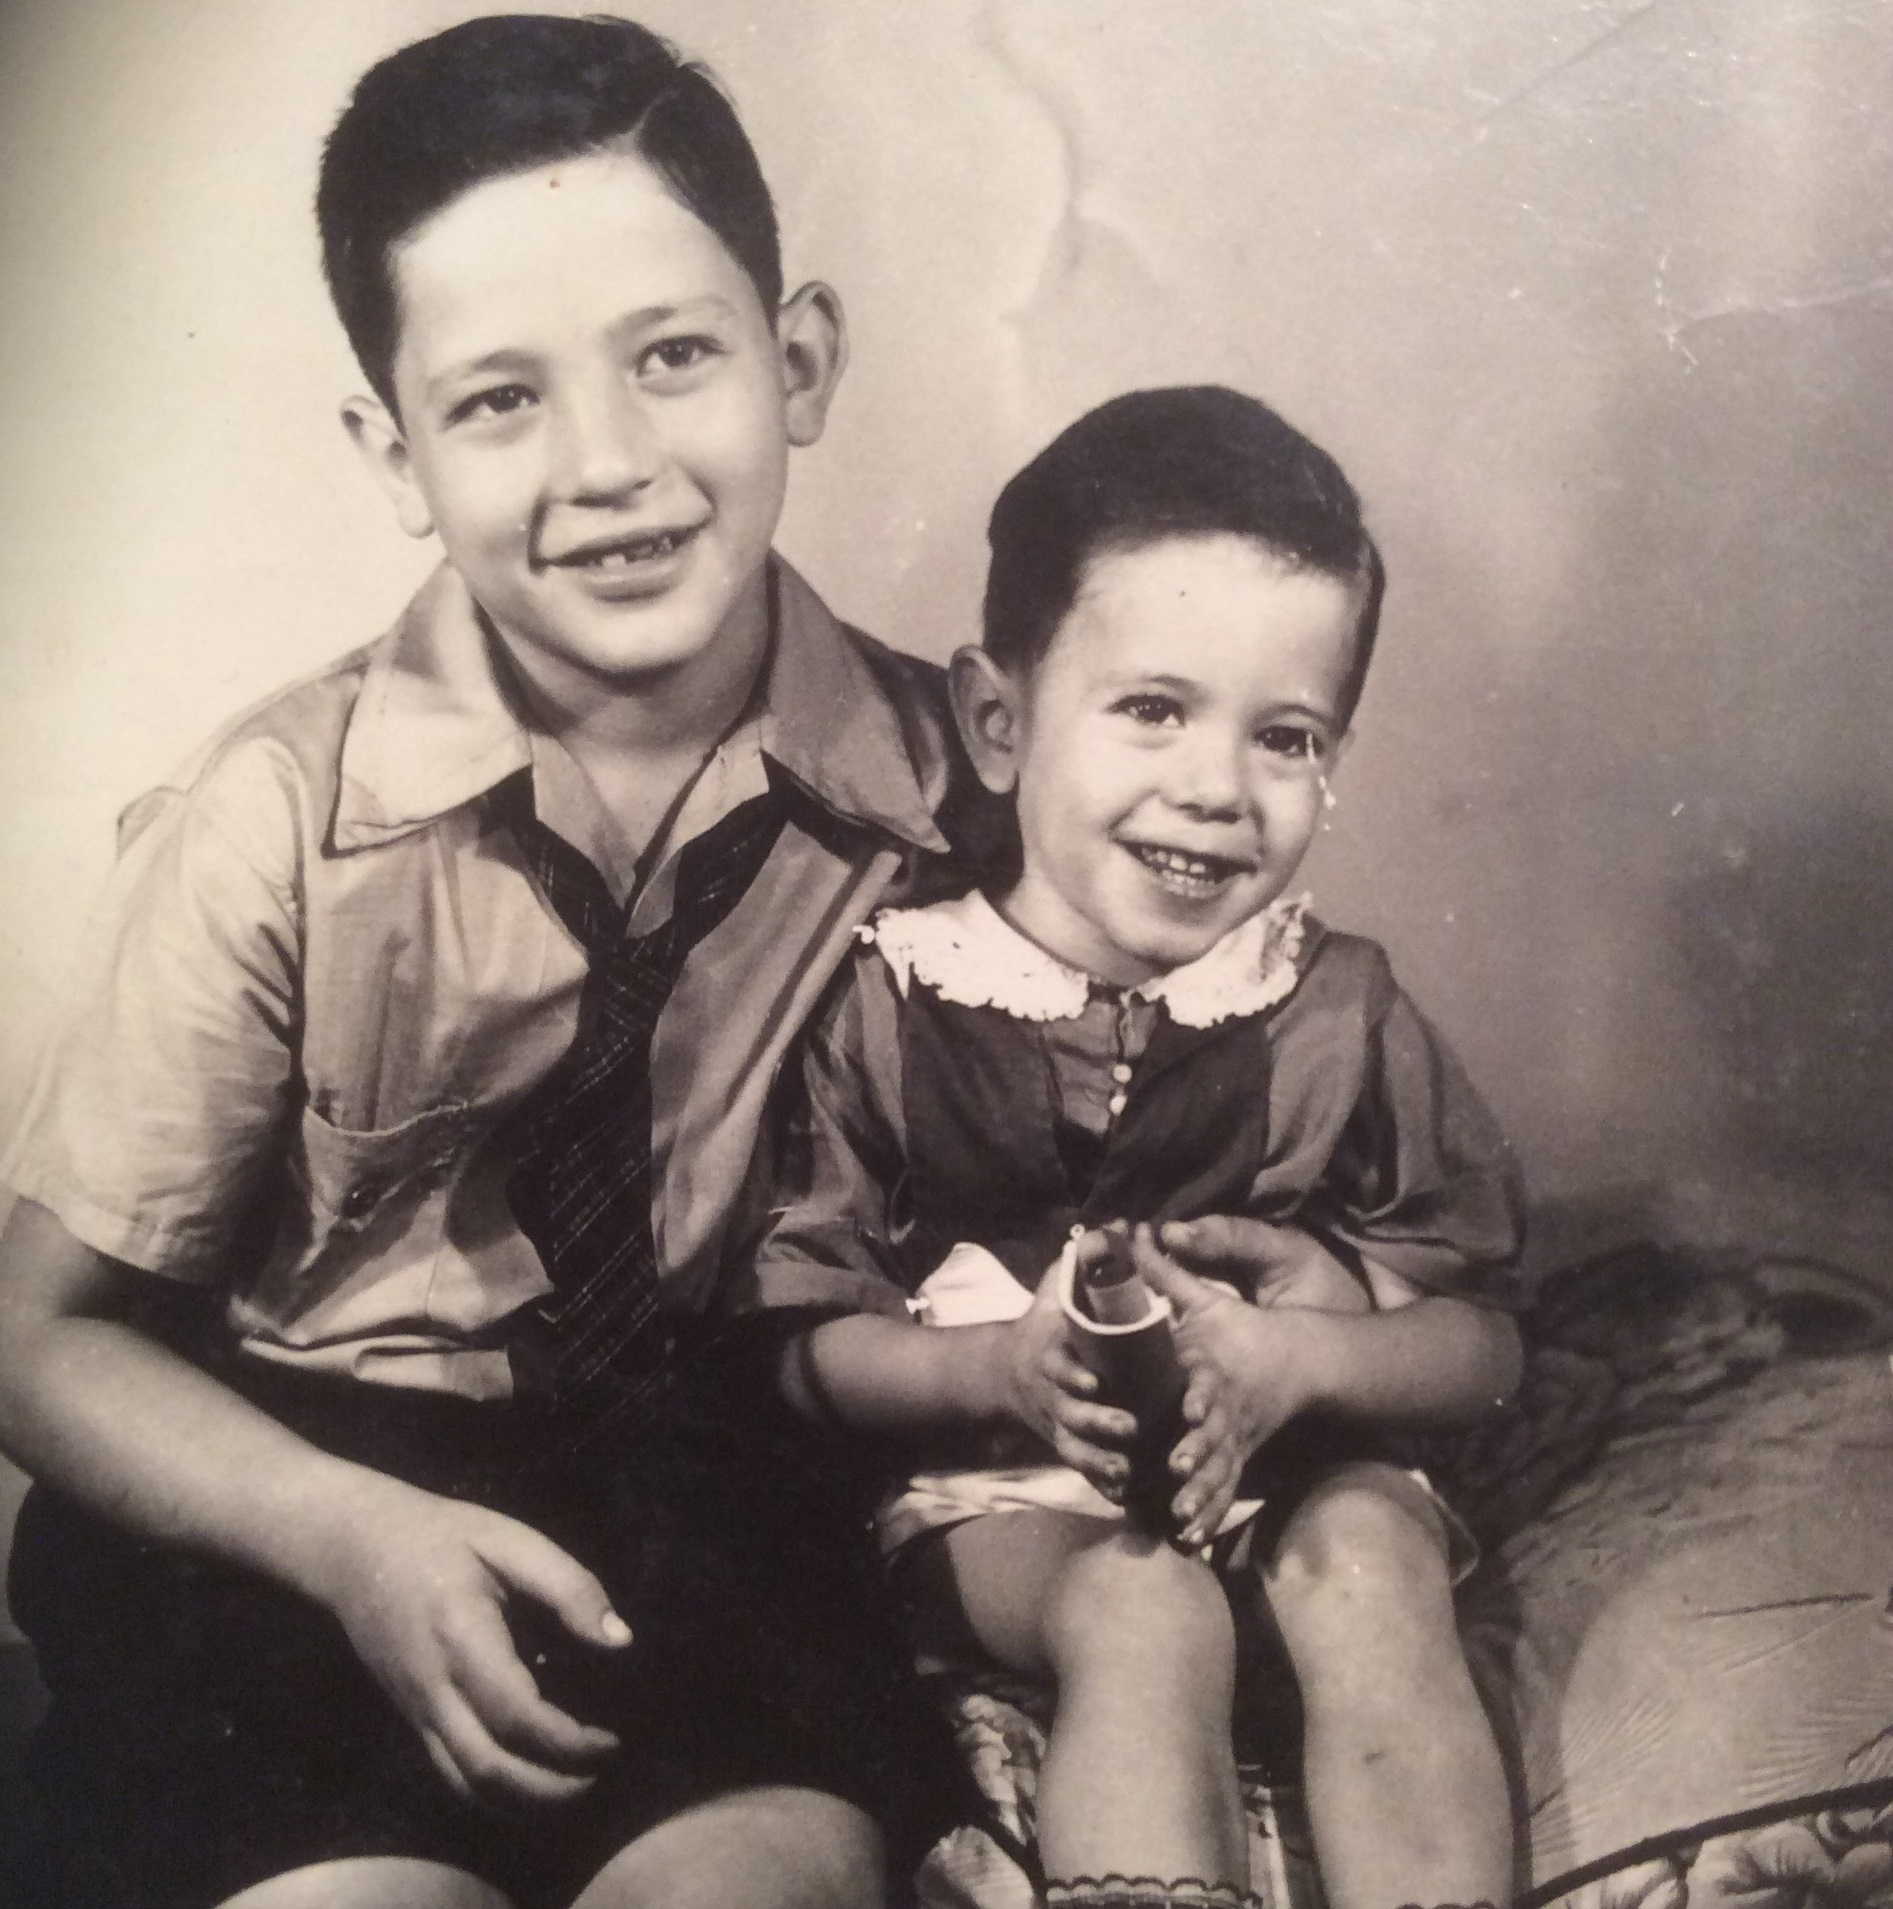 Larry and Bernie Sanders as children